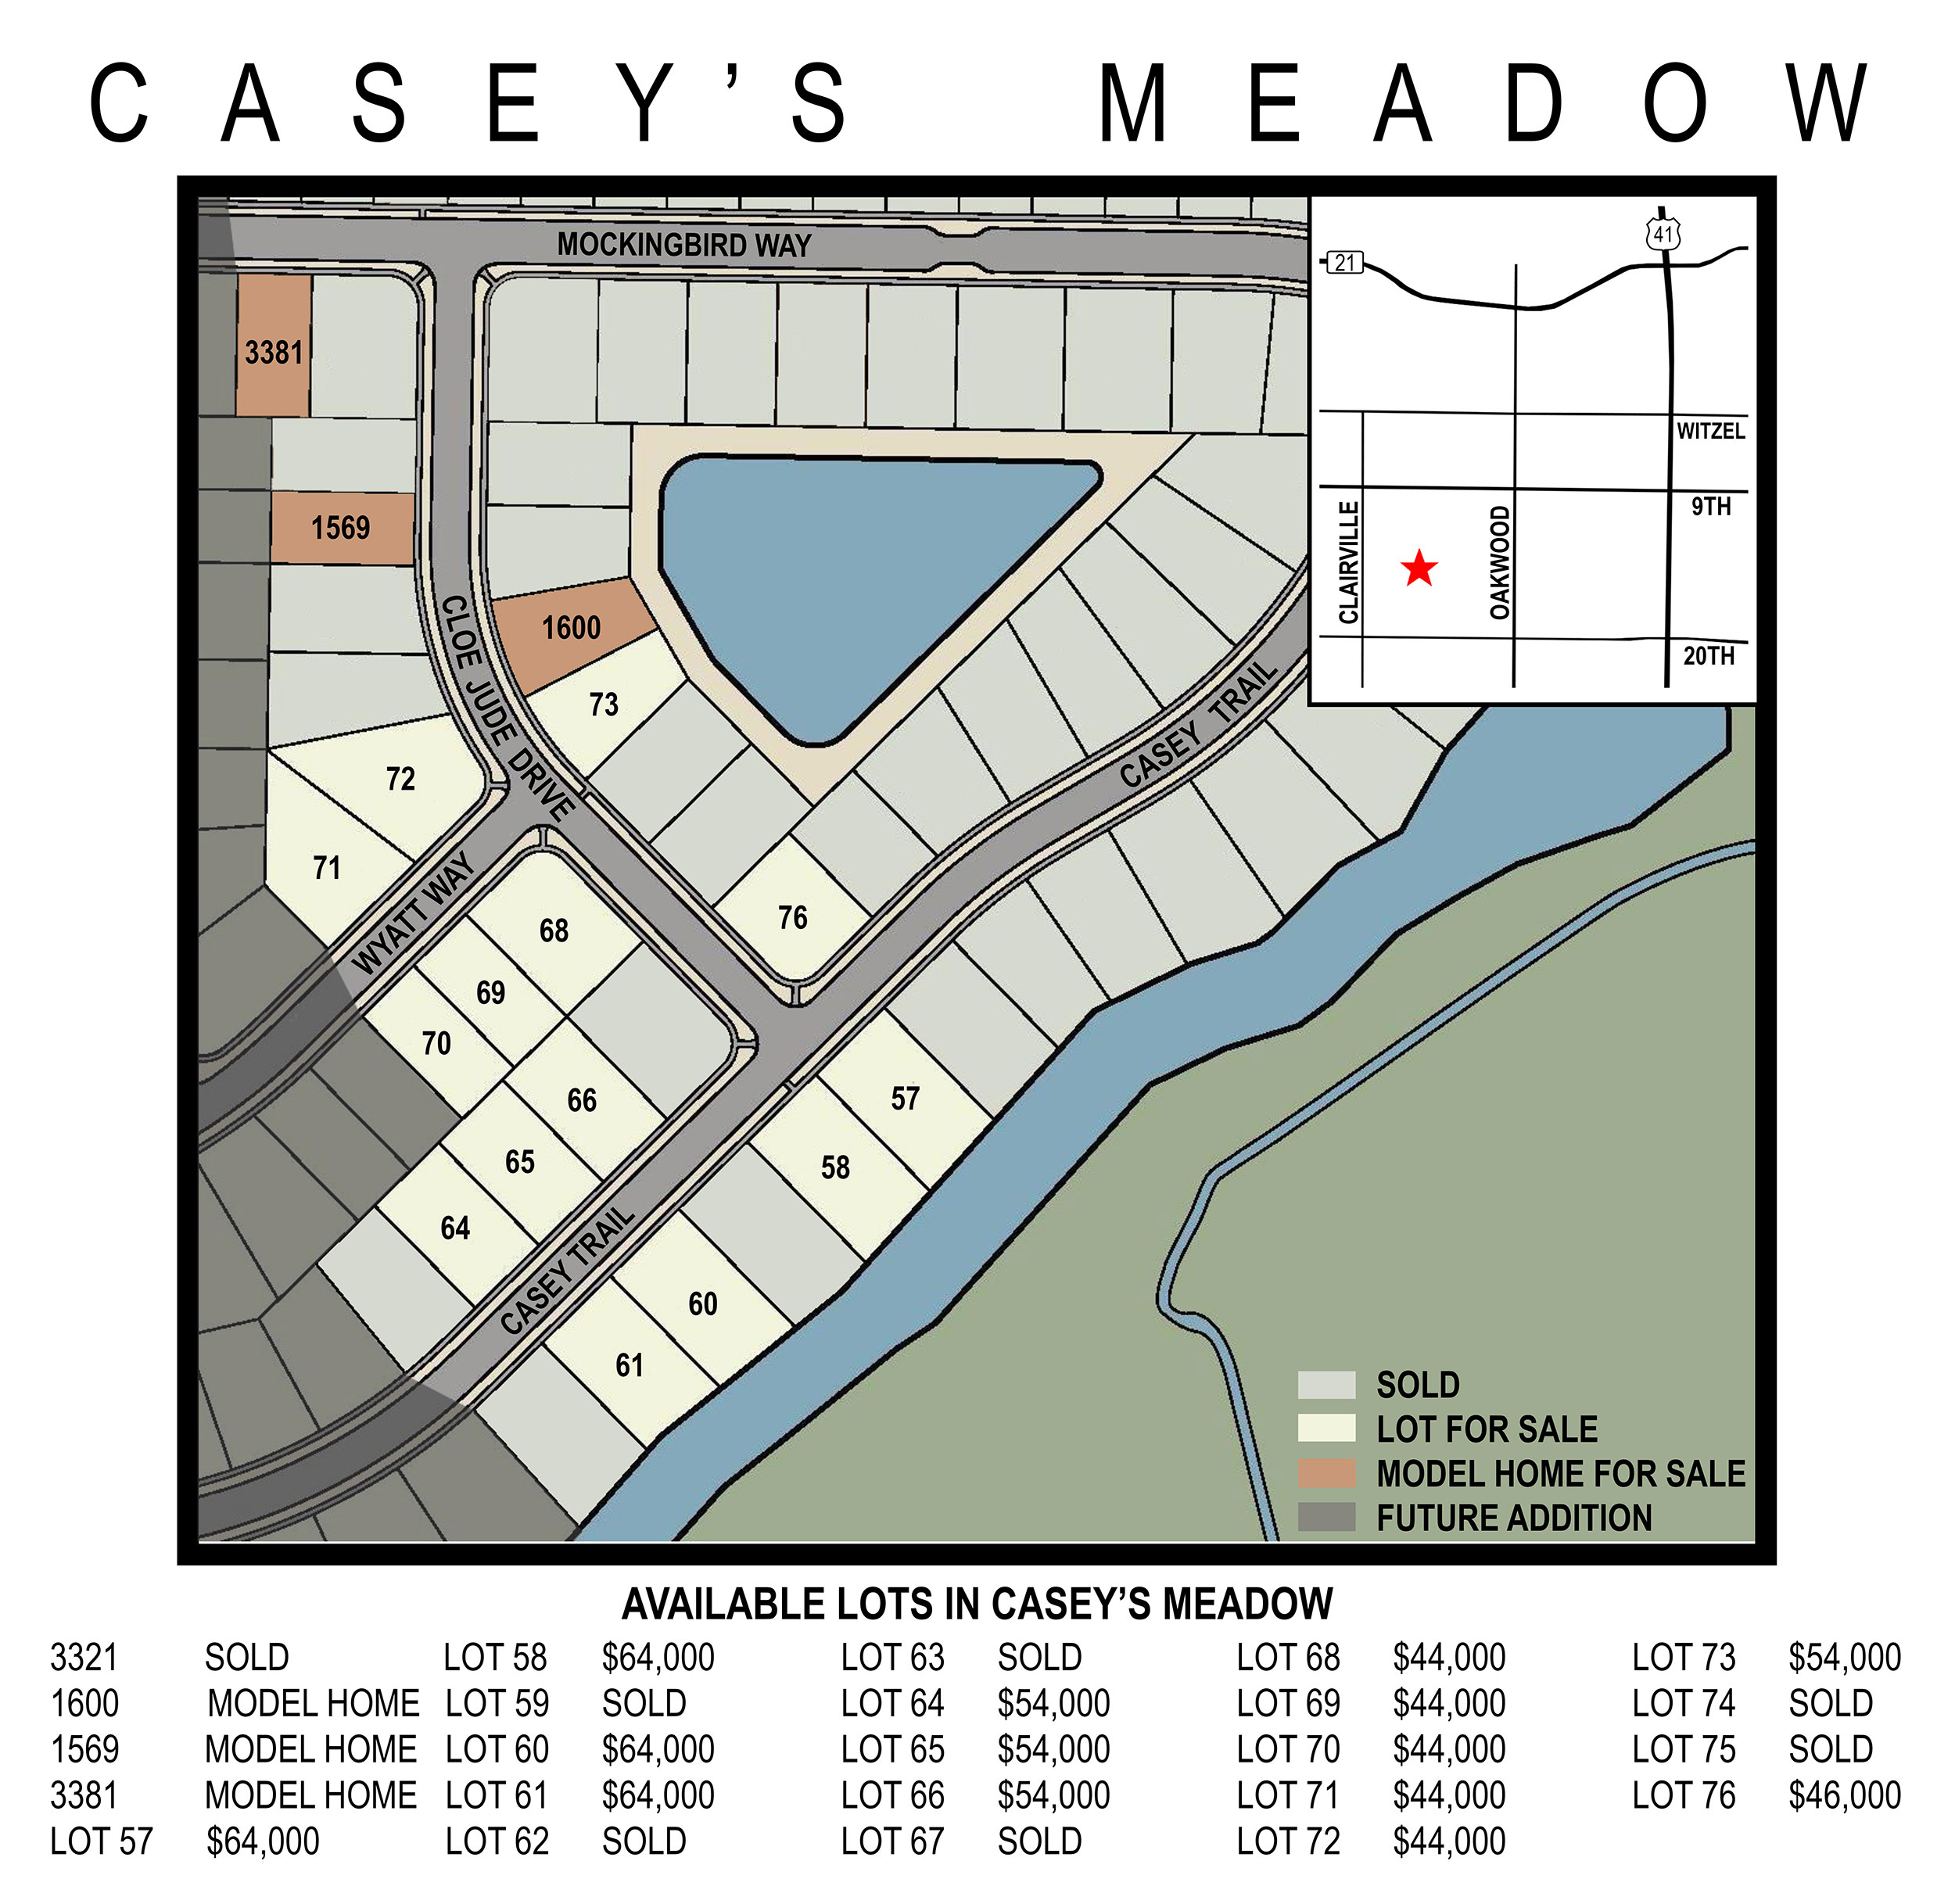 Land for Sale: Casey's Meadow